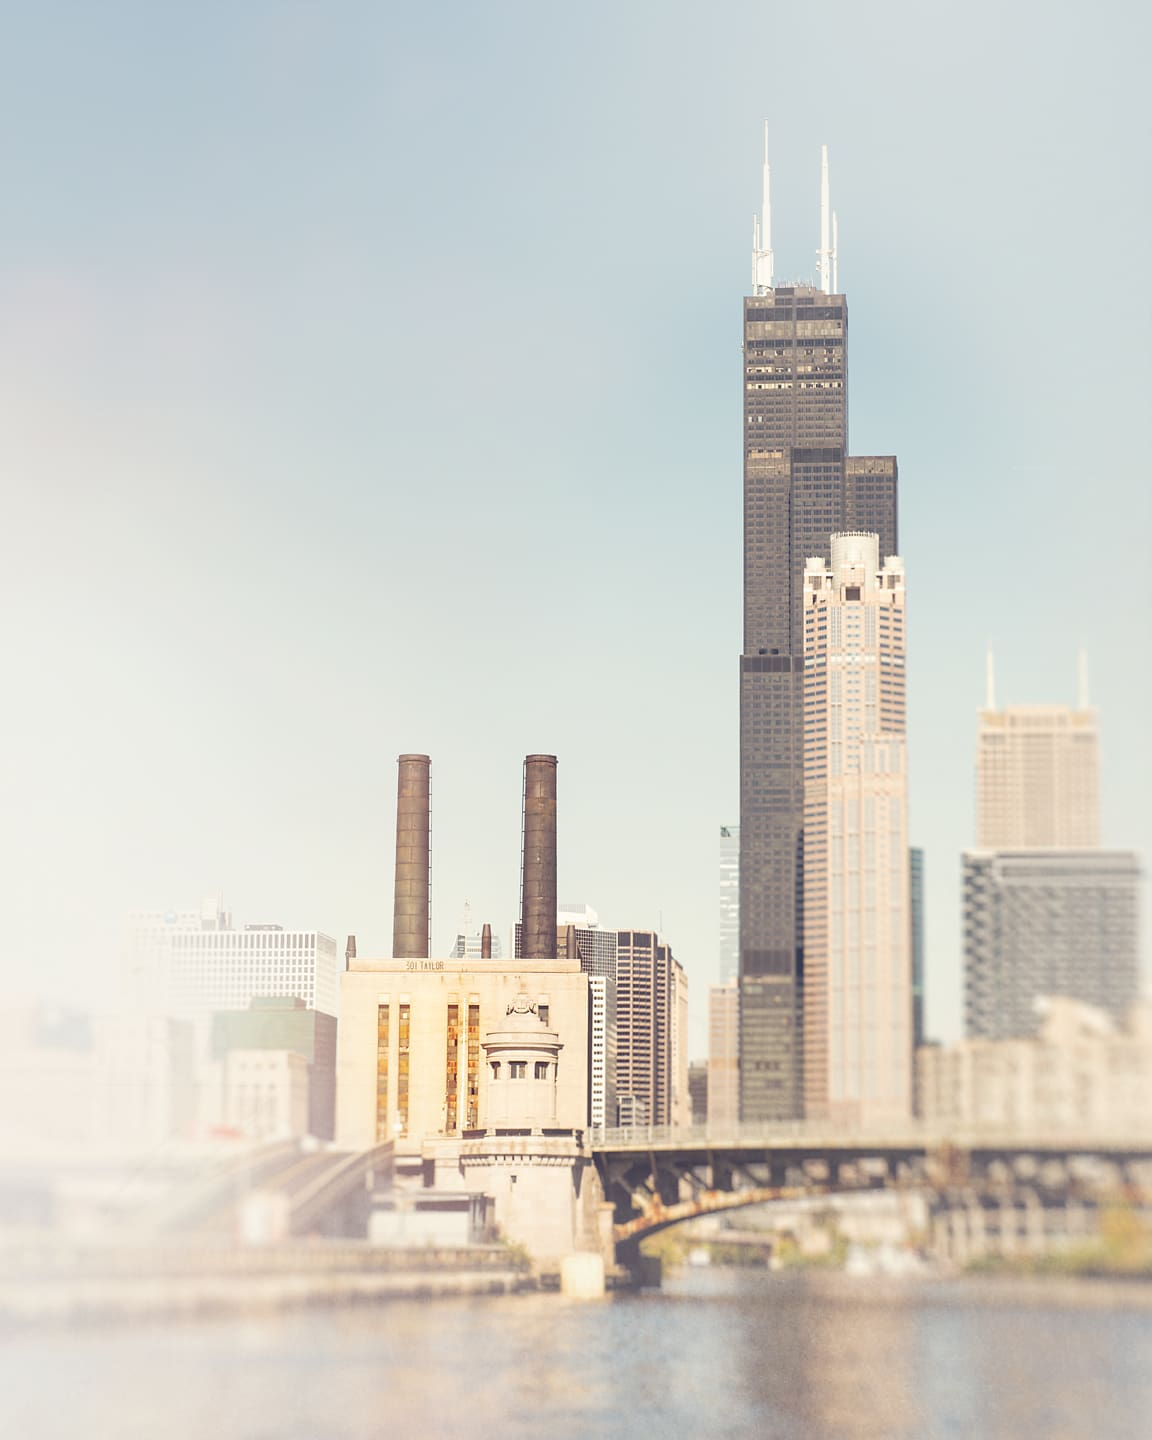 Photograph of the Sears Tower and the Union Station Power House as seen from the Chicago River, by Tracey Capone